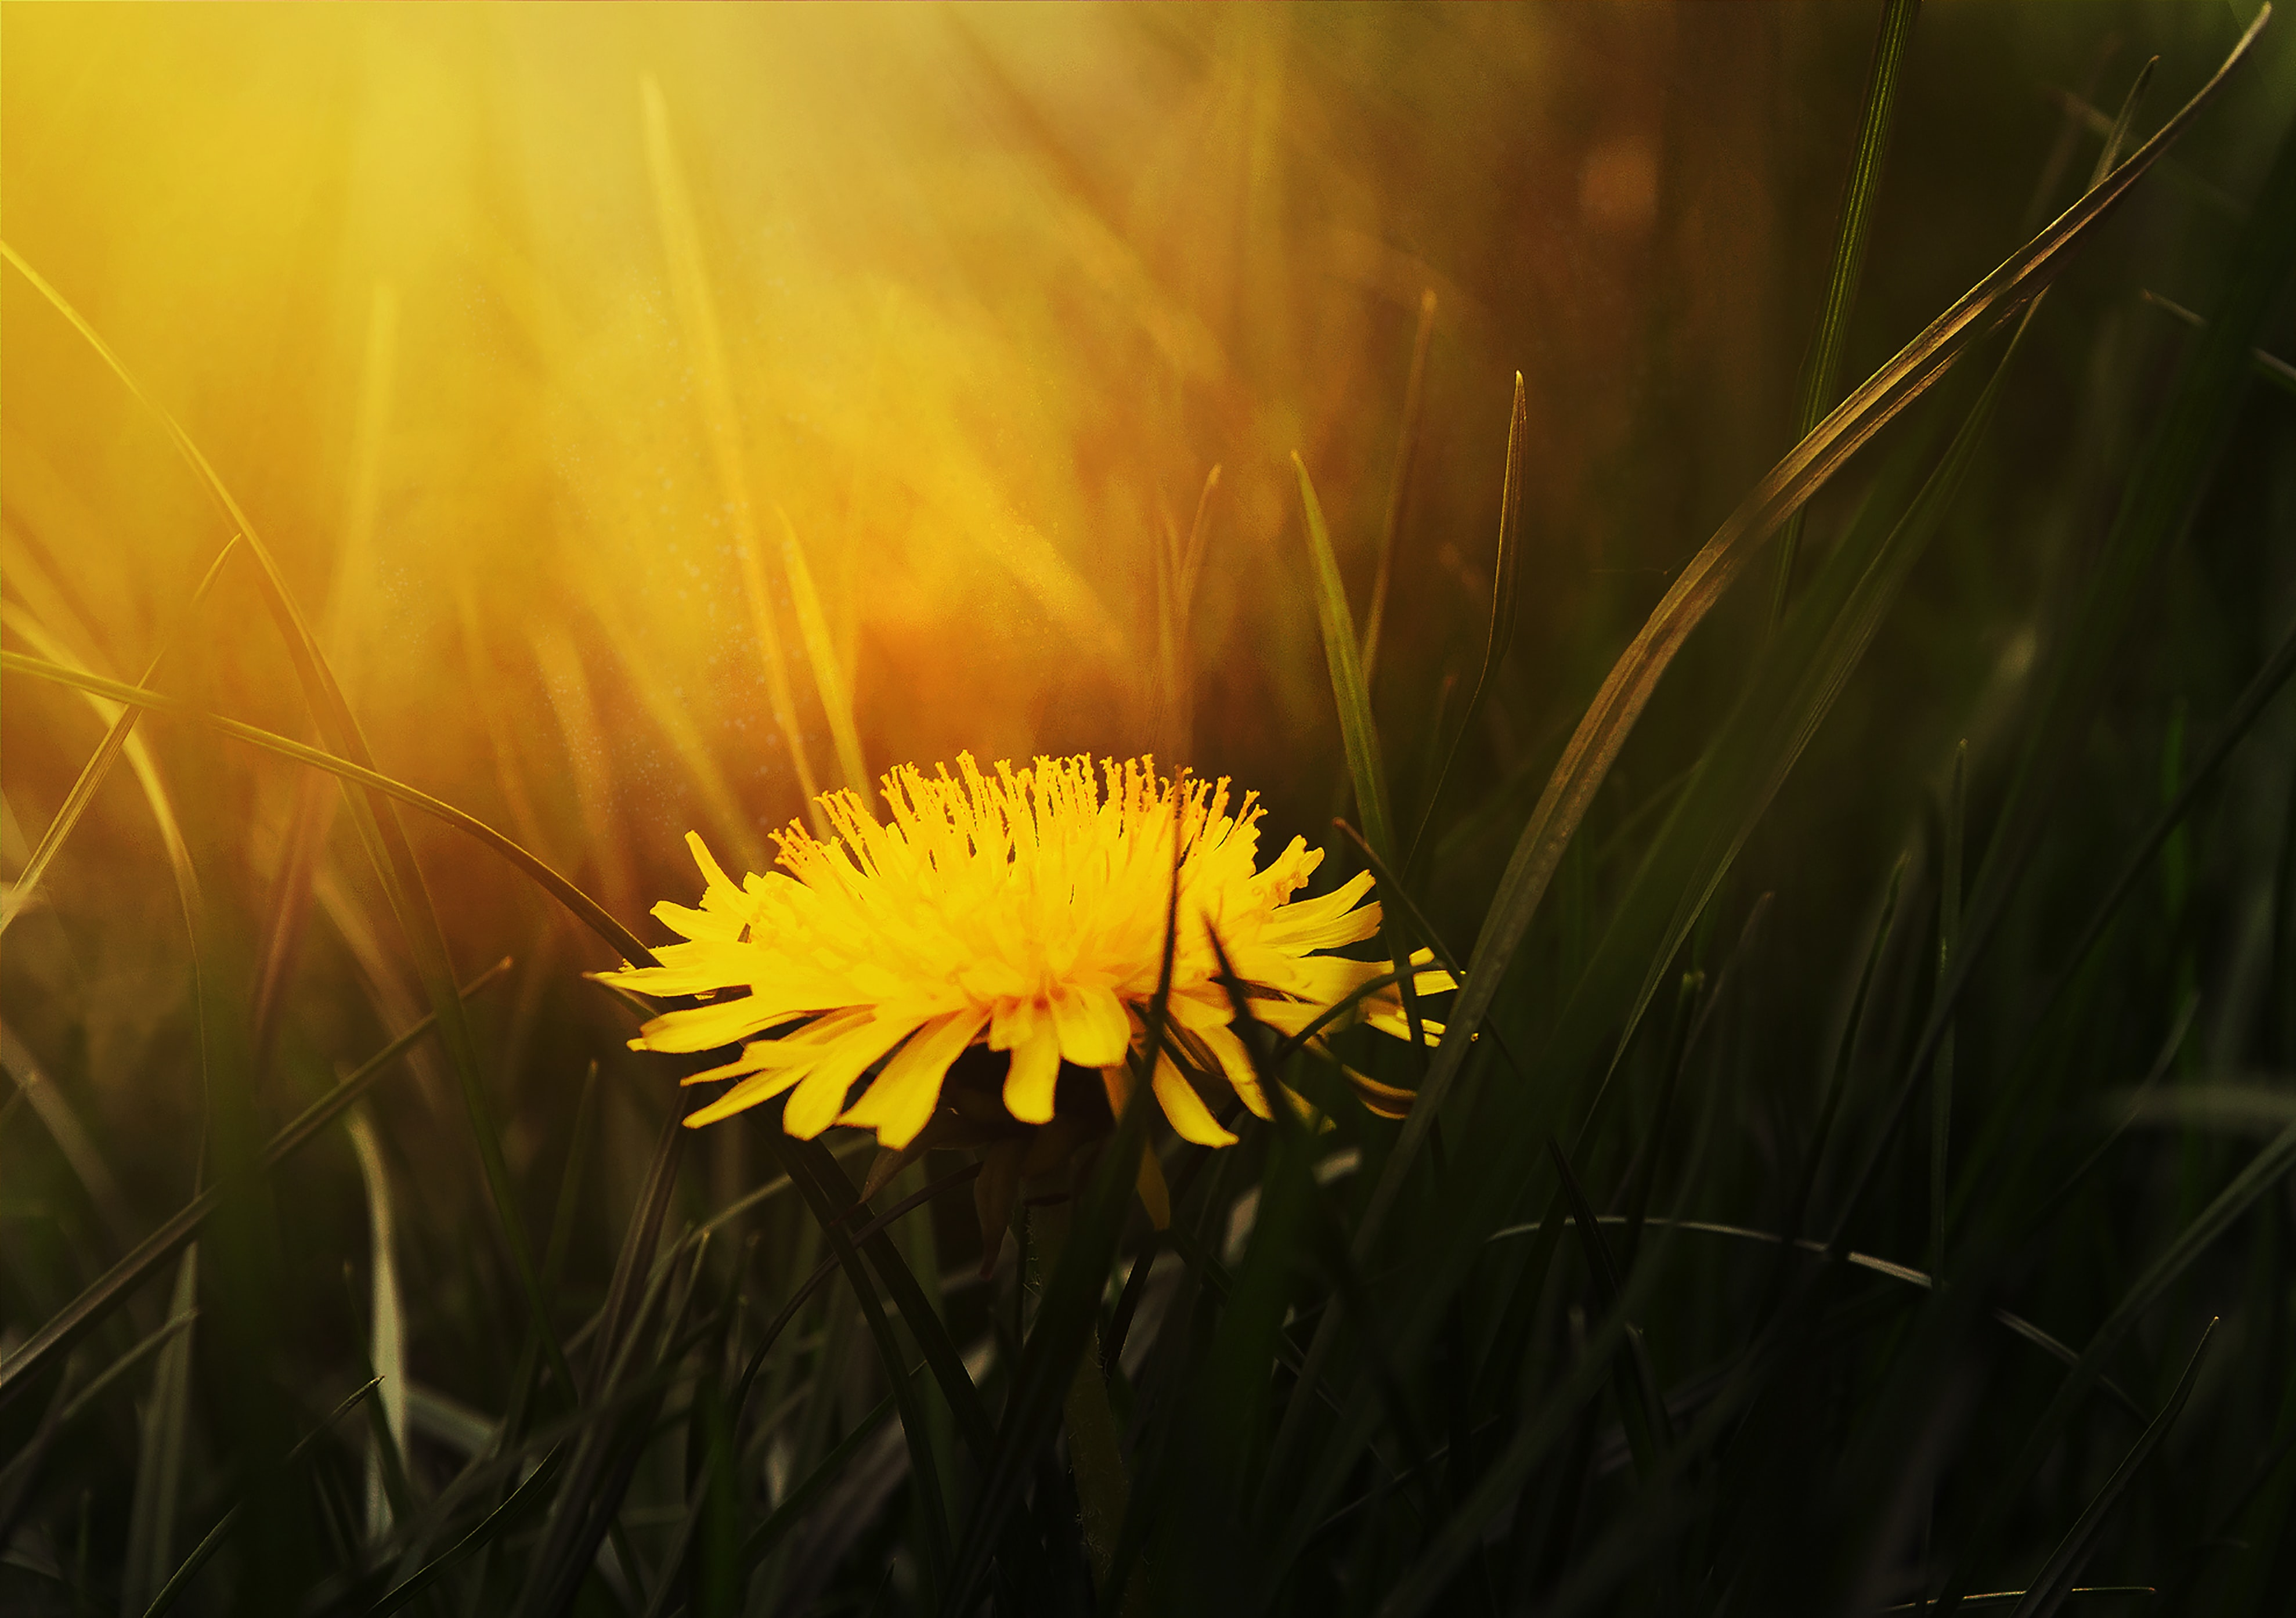 Dandelion: How To Eat and Prepare For Health